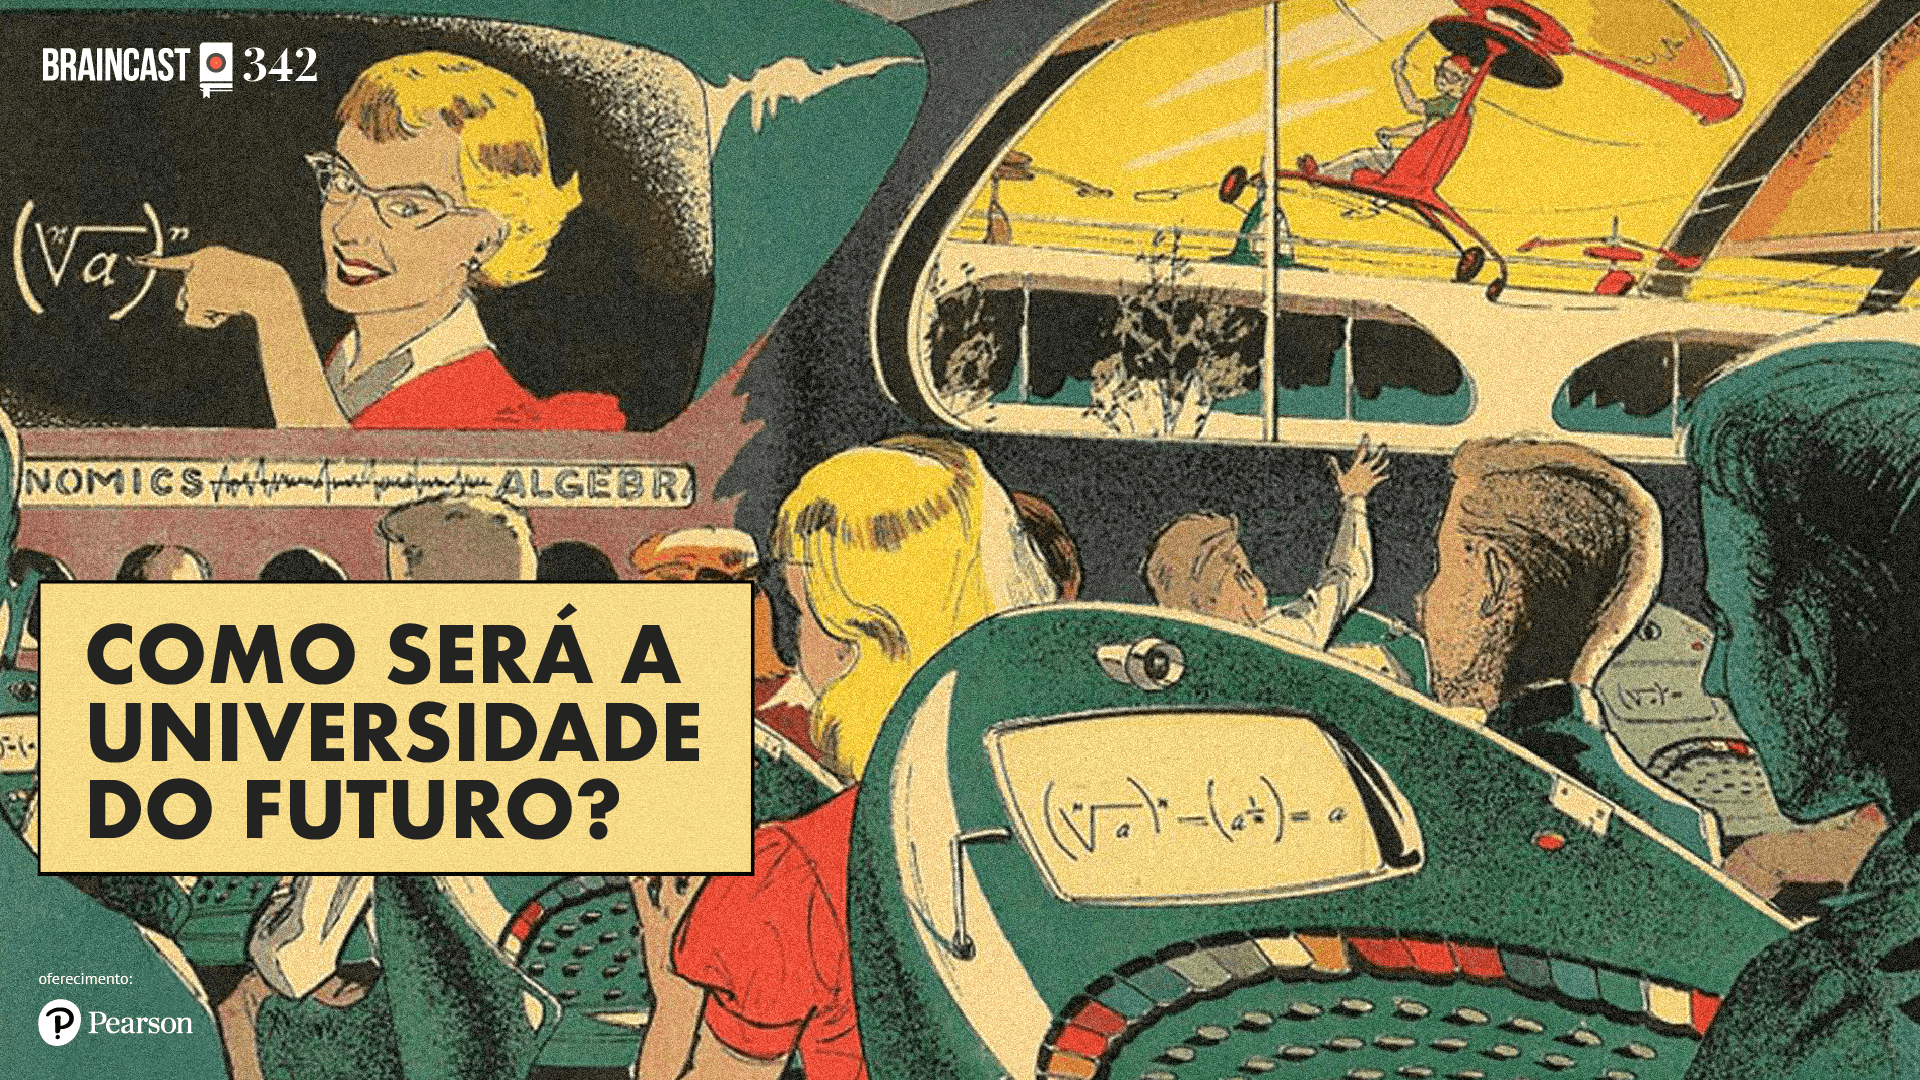 Braincast 342 – Como será a universidade do futuro?